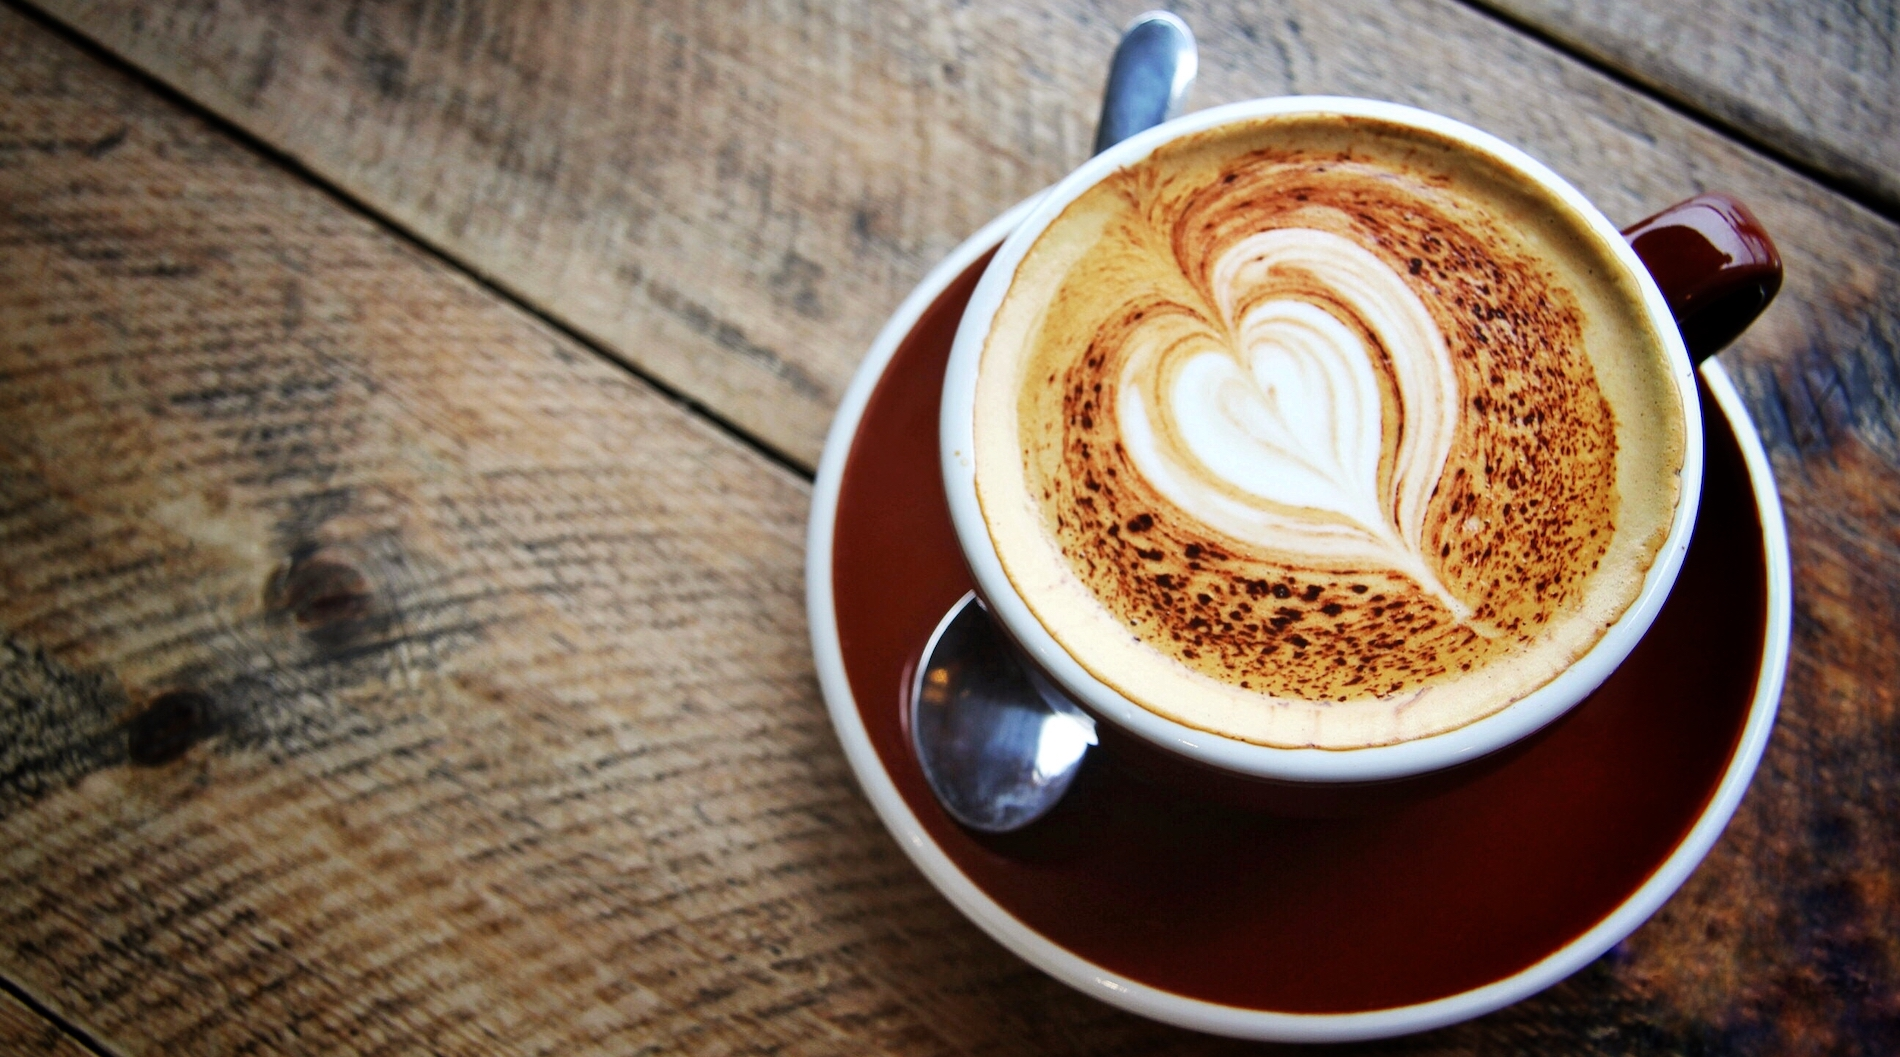 from-above-onto-a-cappucino-coffee-cup-and-saucer–7B3H2YN